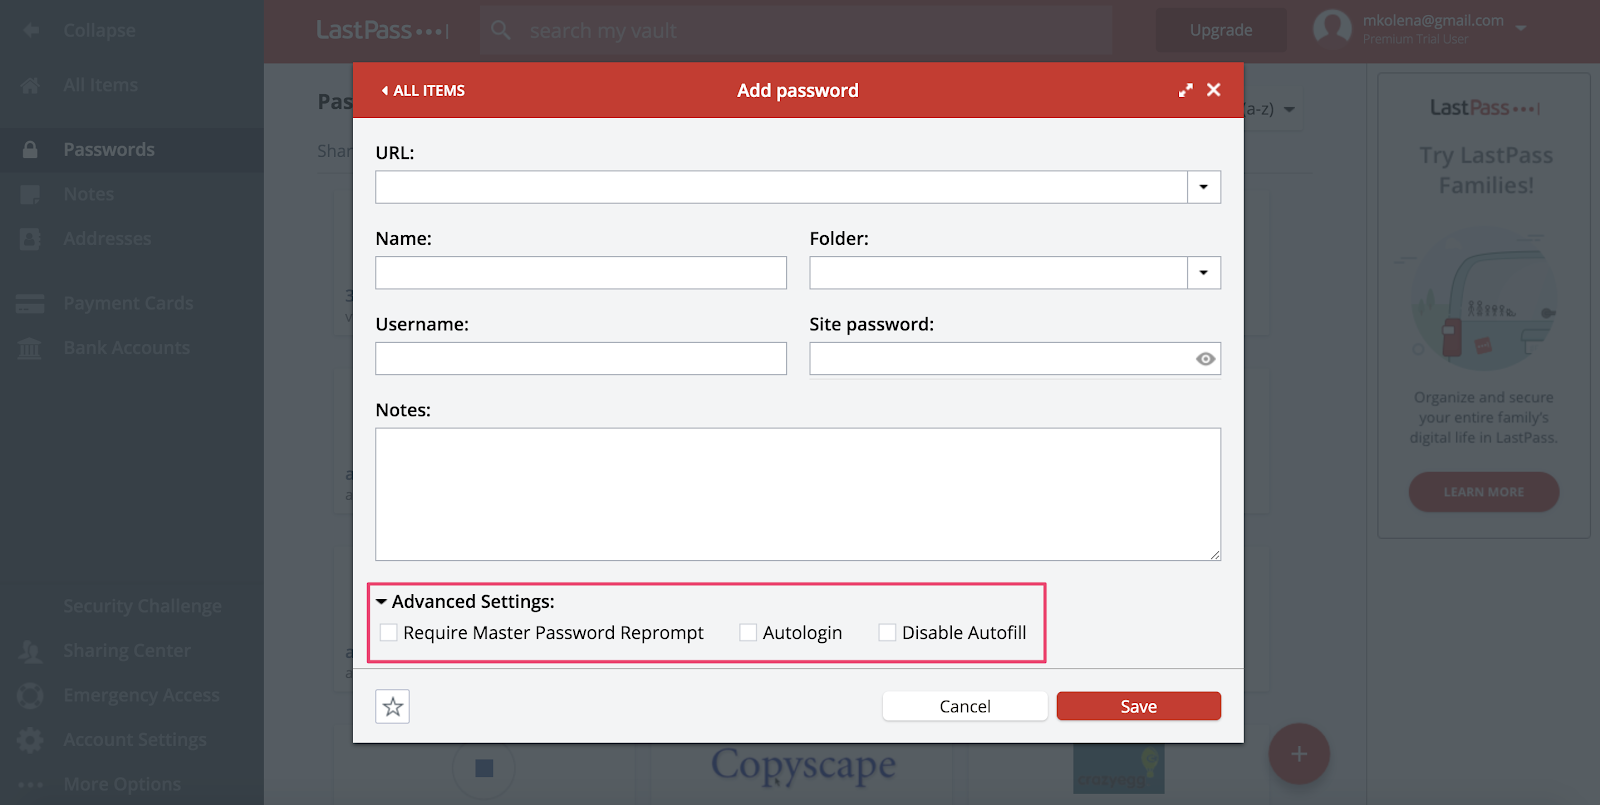 LastPass password manager advanced settings